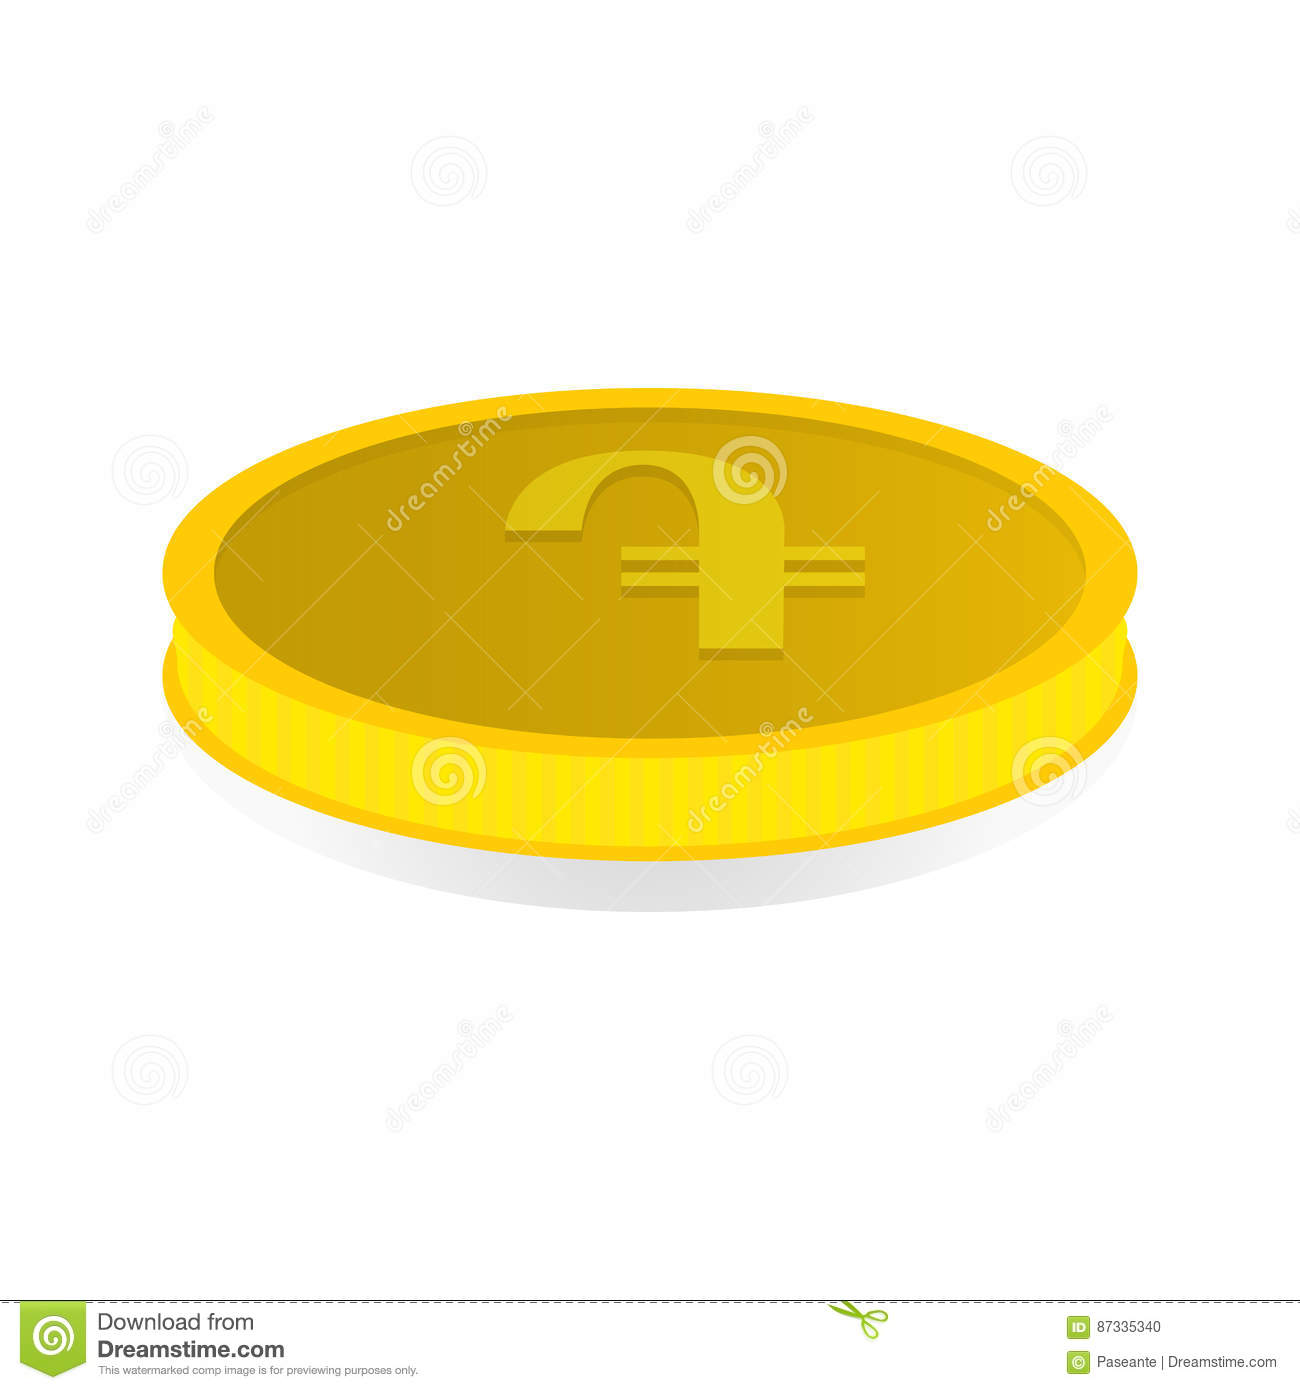 Vector Illustration Of A Gold Coin With Symbol Of Amd Dram Stock